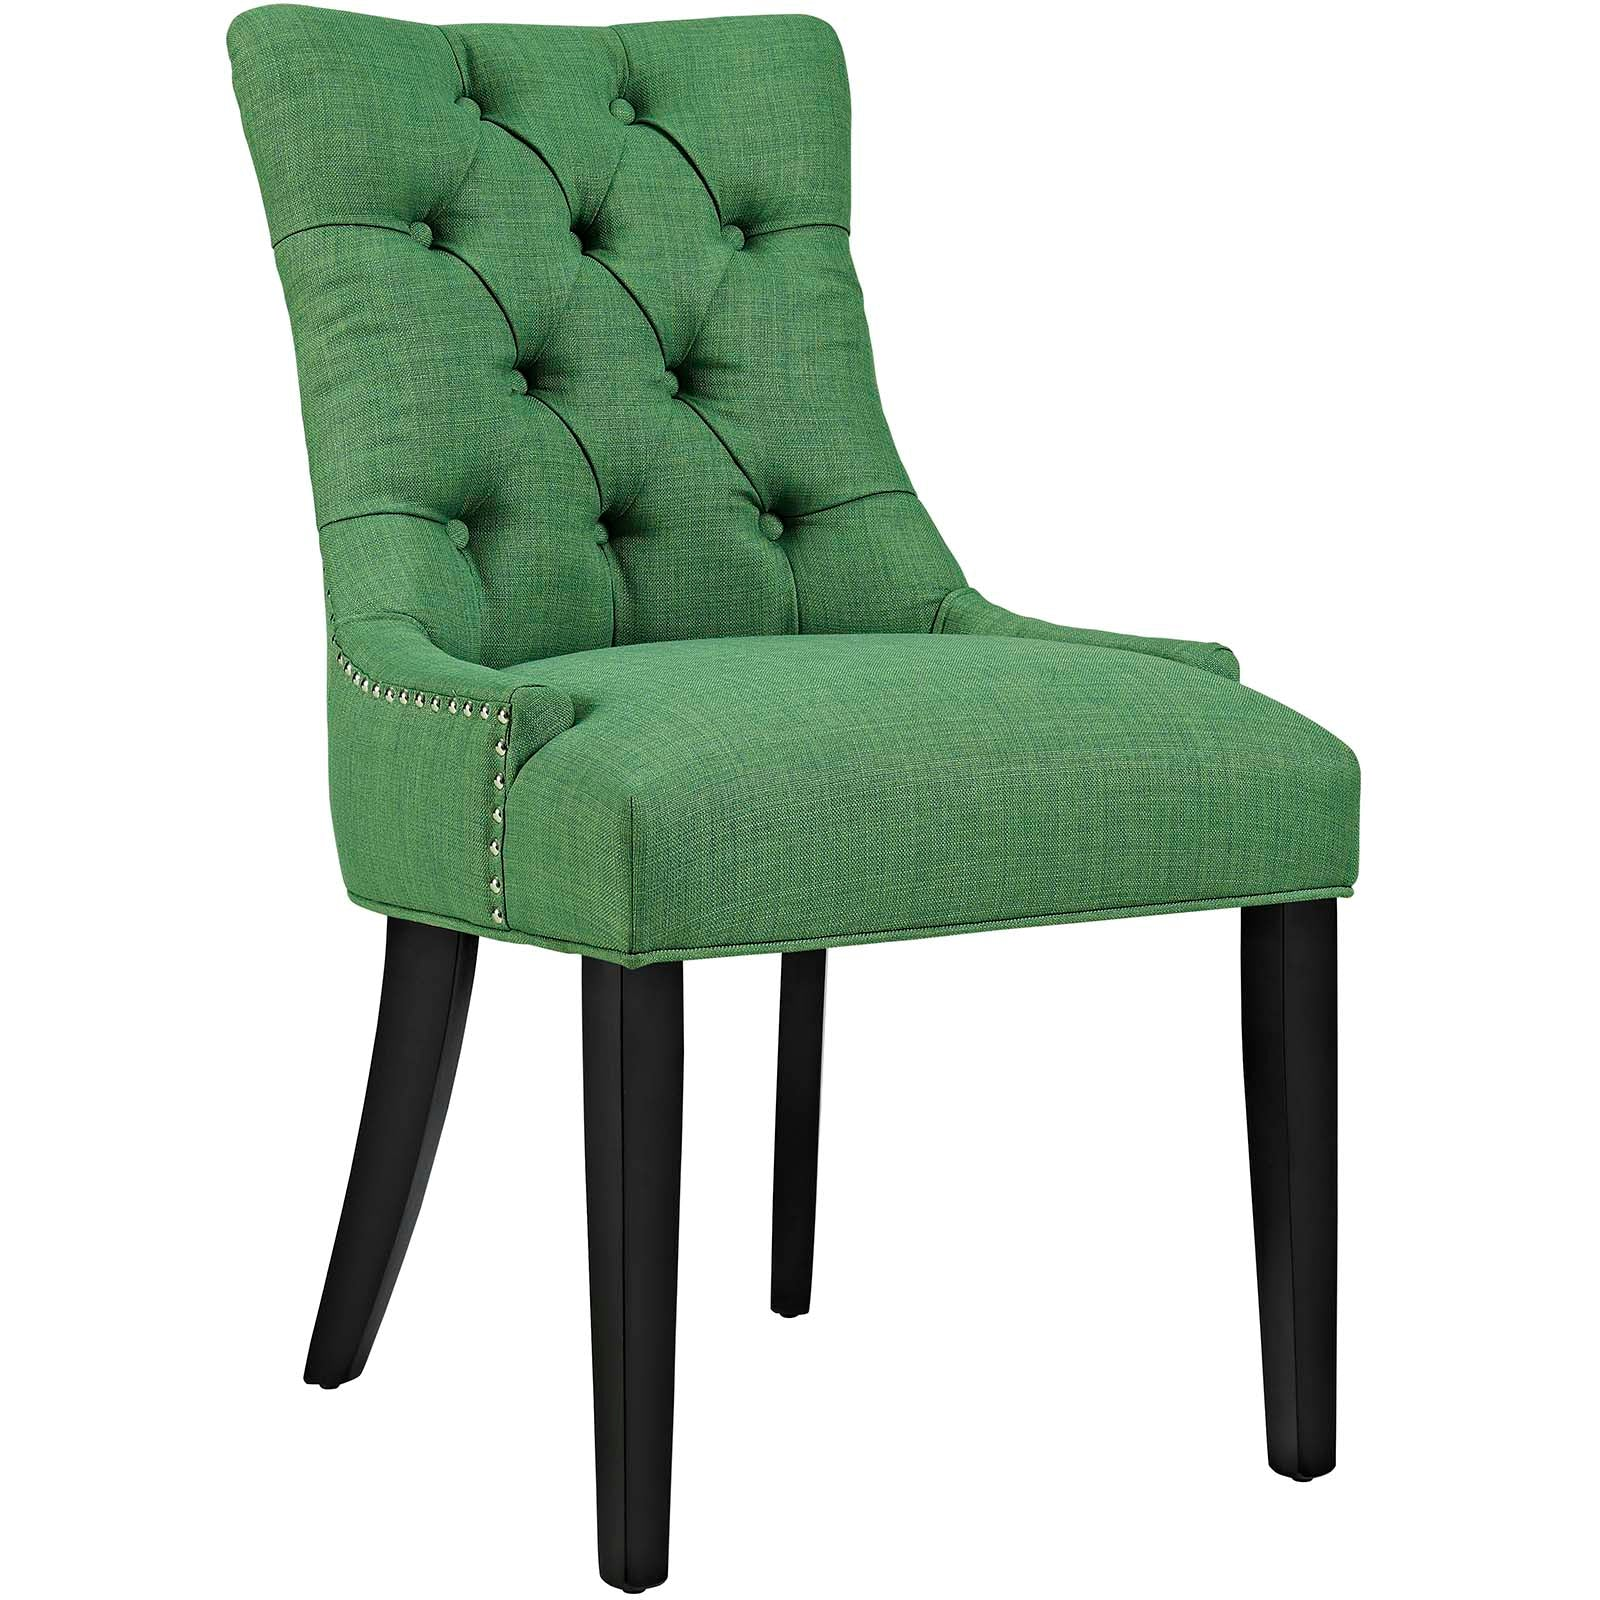 Modway regent fabric dining chair with studded nailhead - Telas para tapizar sofas ...